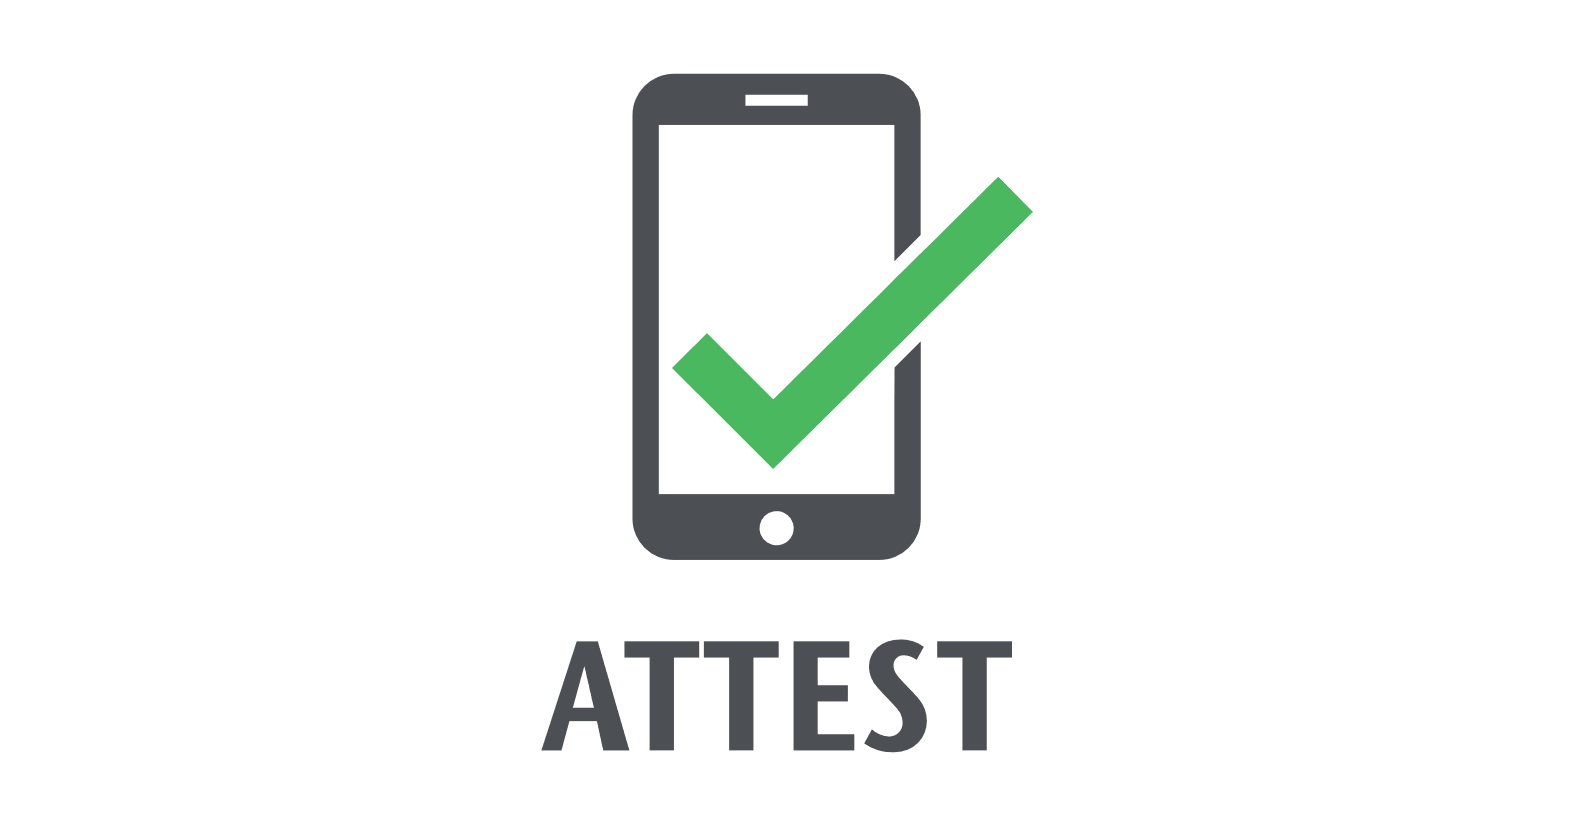 Icon for attesting online